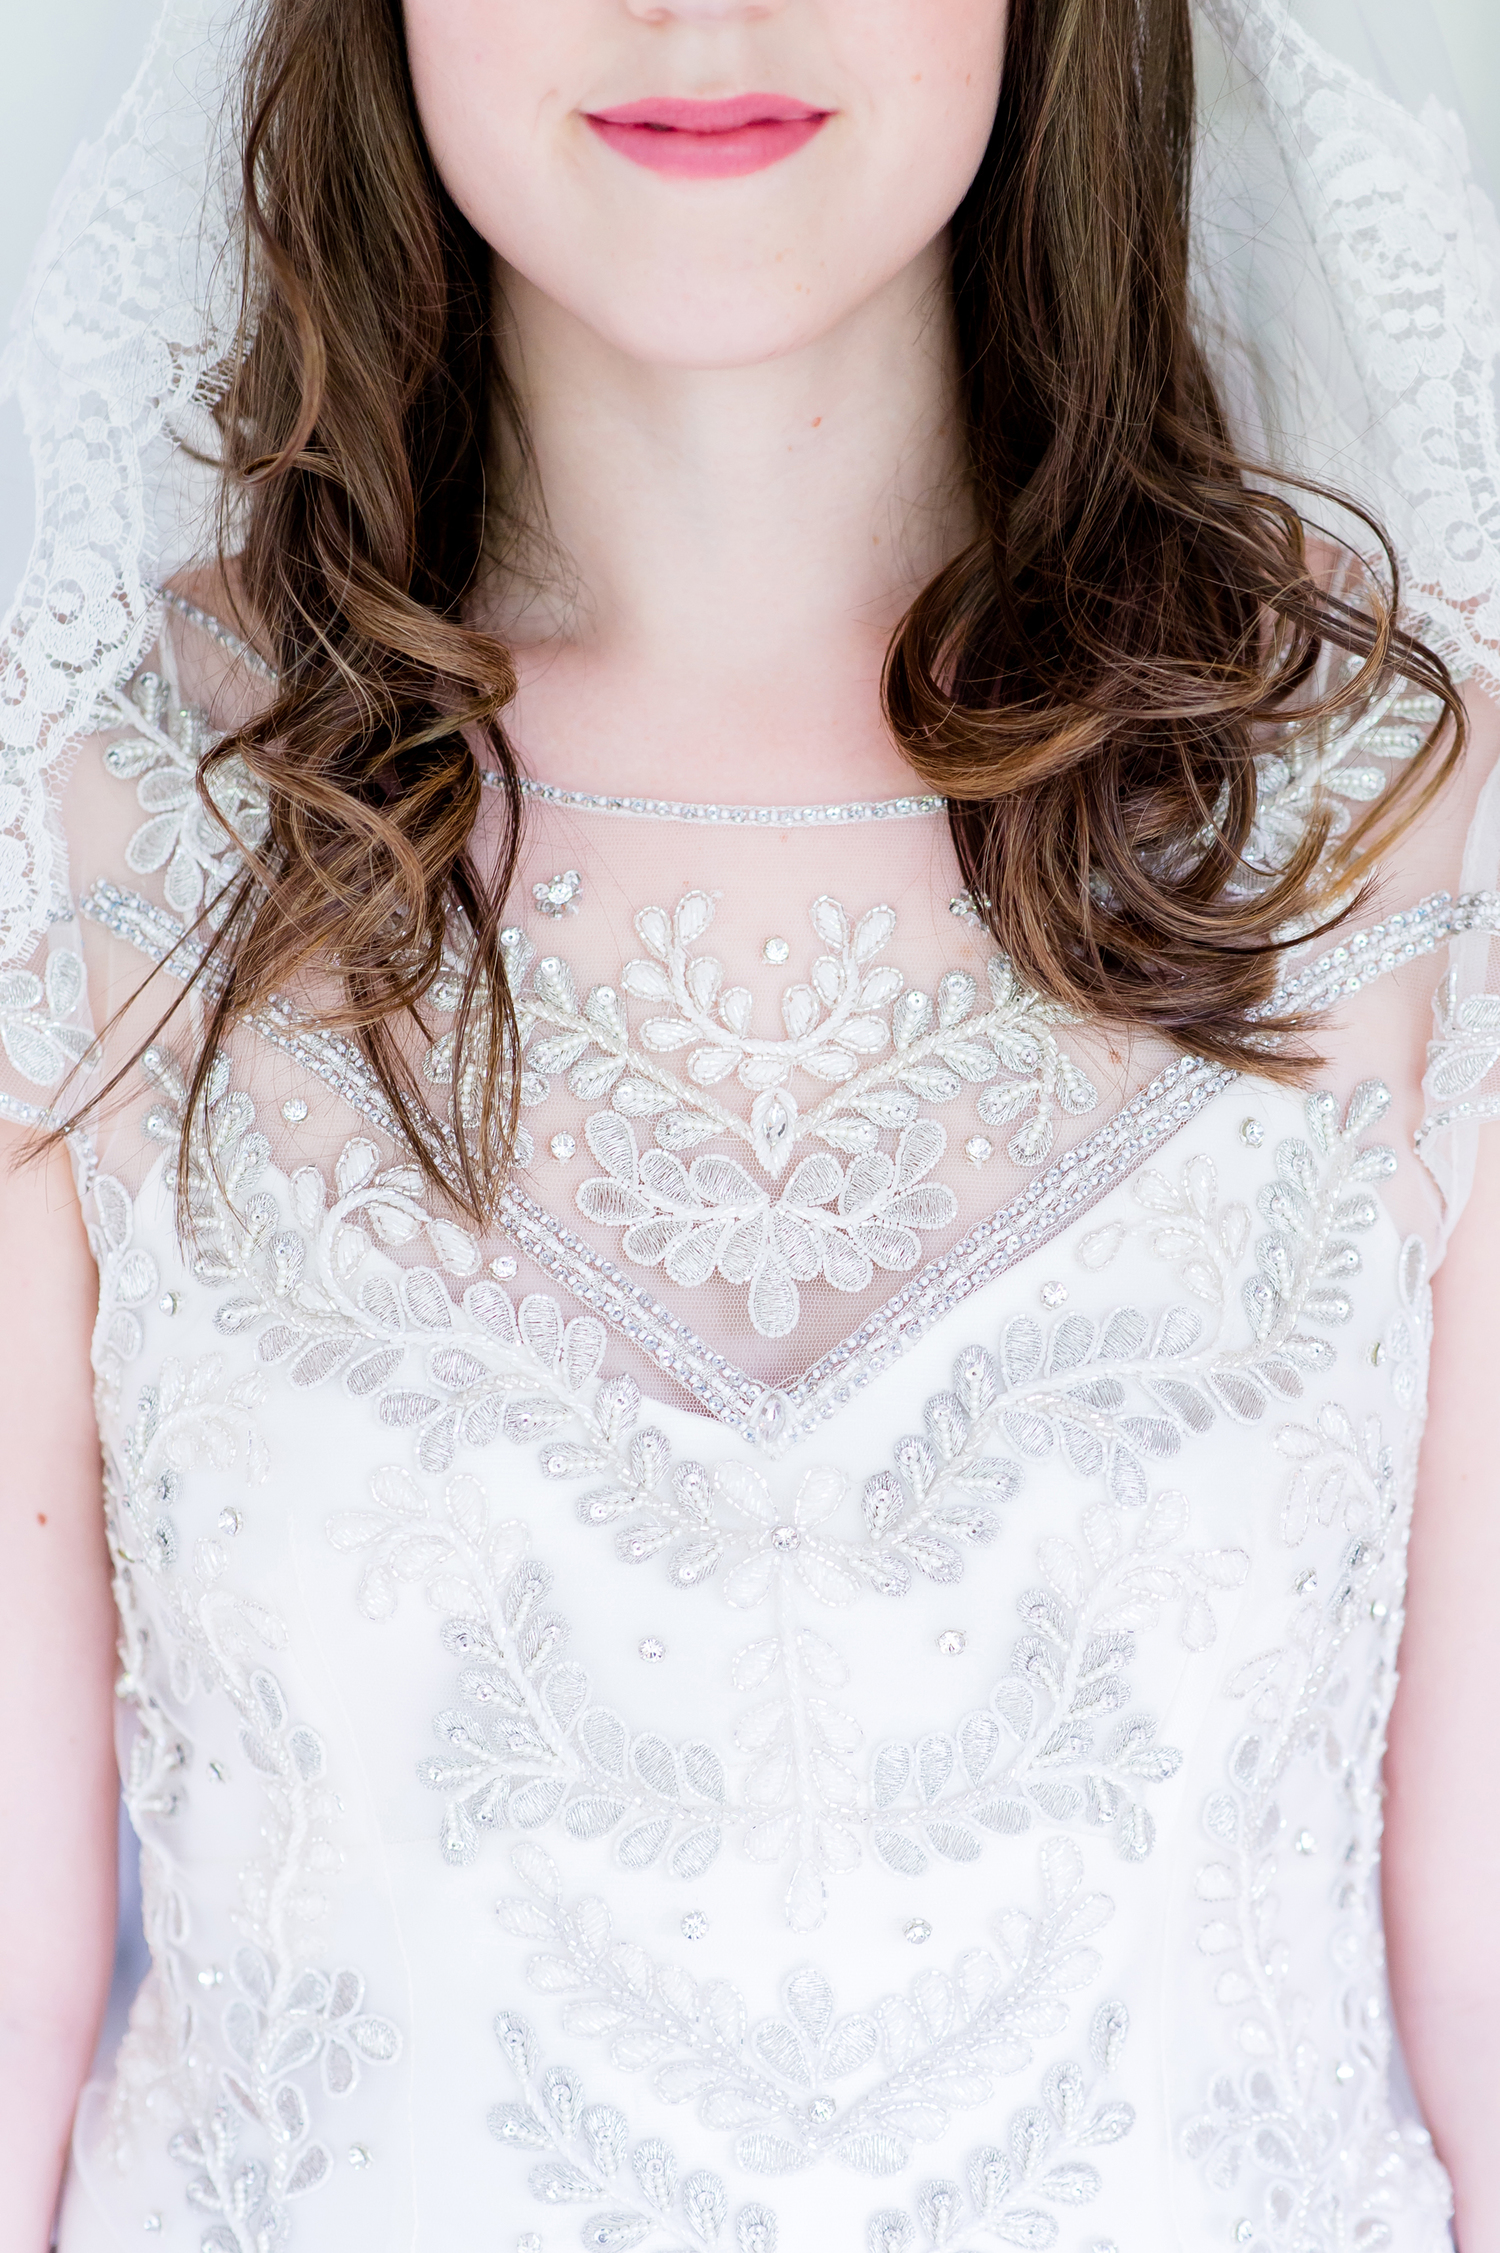 A gorgeous real bride wearing the Marianne wedding dress by Halfpenny London